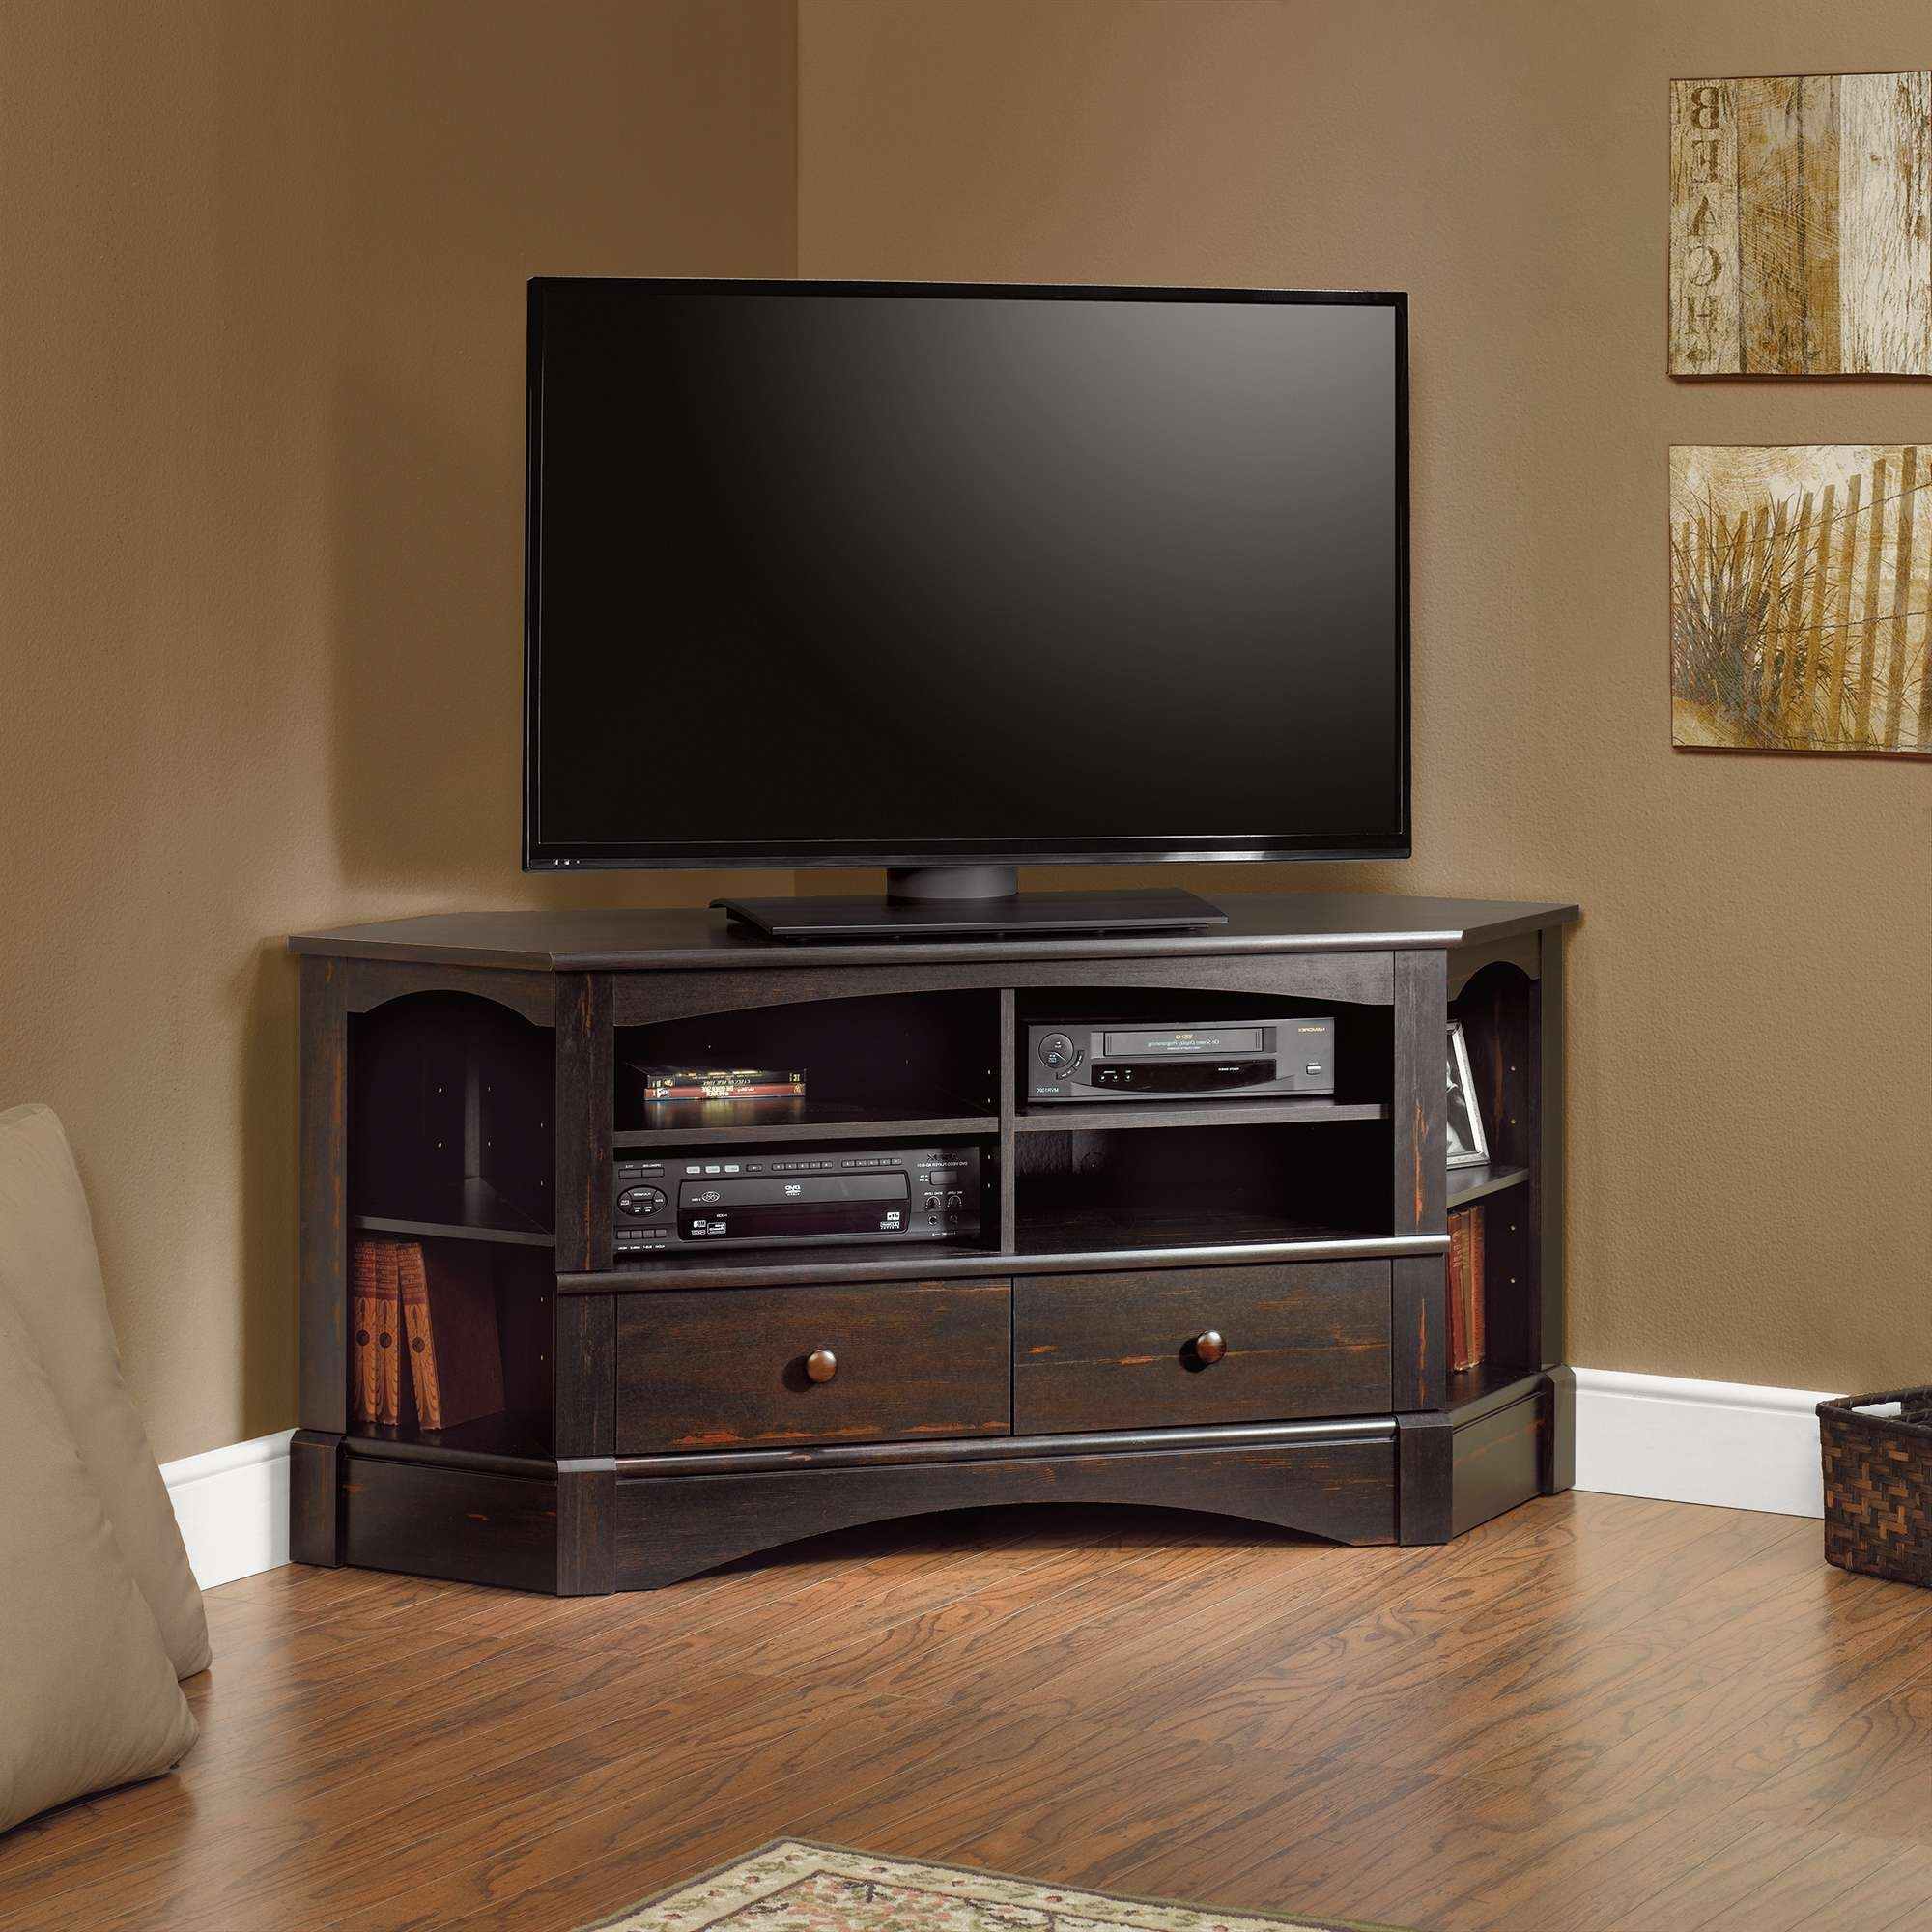 Tall Tv Stands For Bedroom 2017 Including Stand Images Light Brown Intended For Light Brown Tv Stands (View 16 of 20)